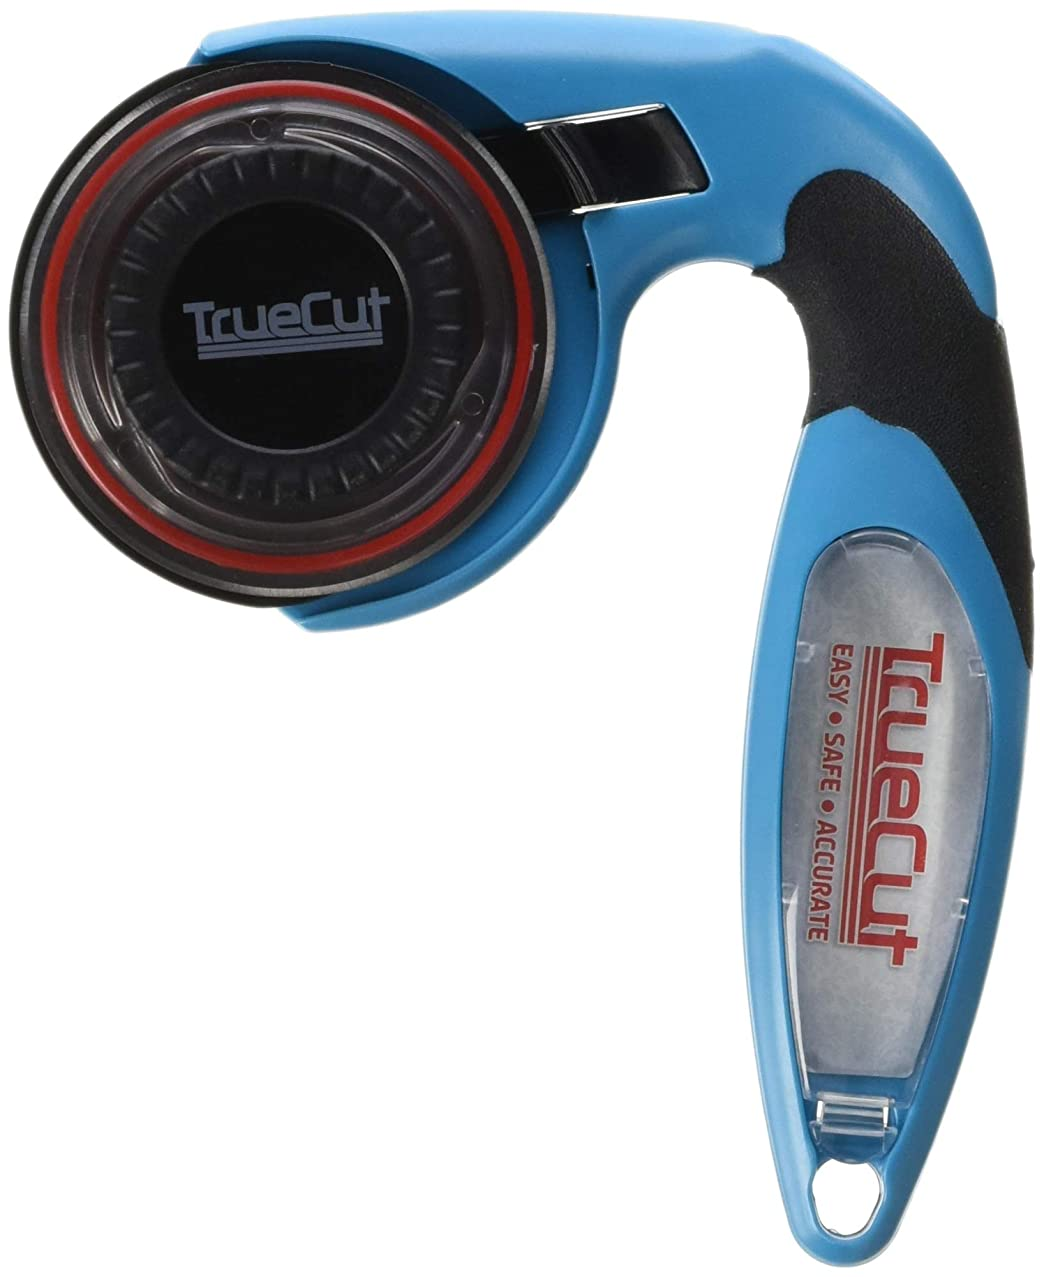 Grace Company TrueCut My Comfort Cutter: 60mm